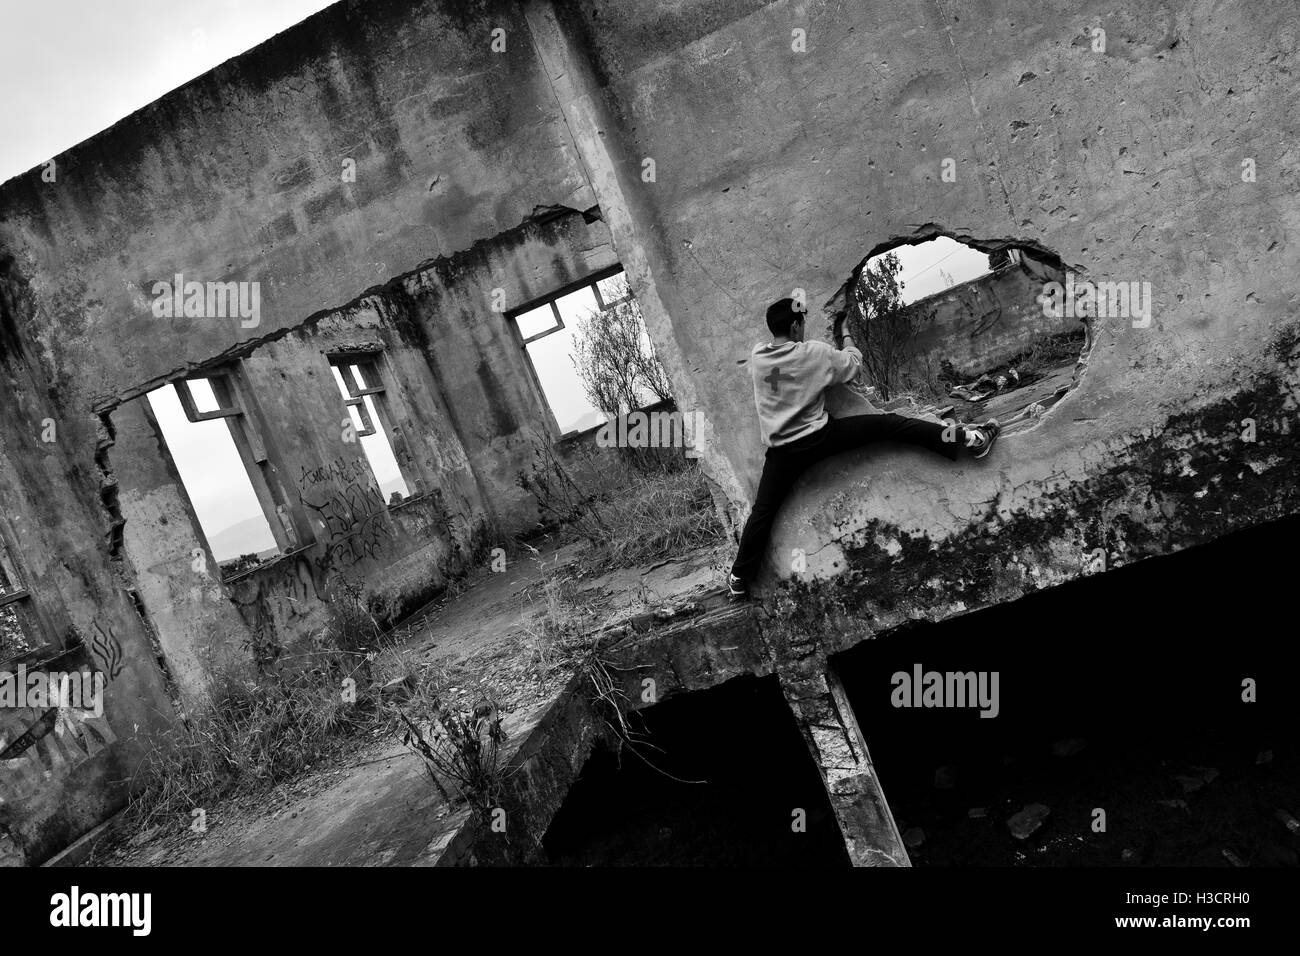 A Colombian parkour runner climbs inside a ruined house during a free running training in Bogotá, Colombia. - Stock Image